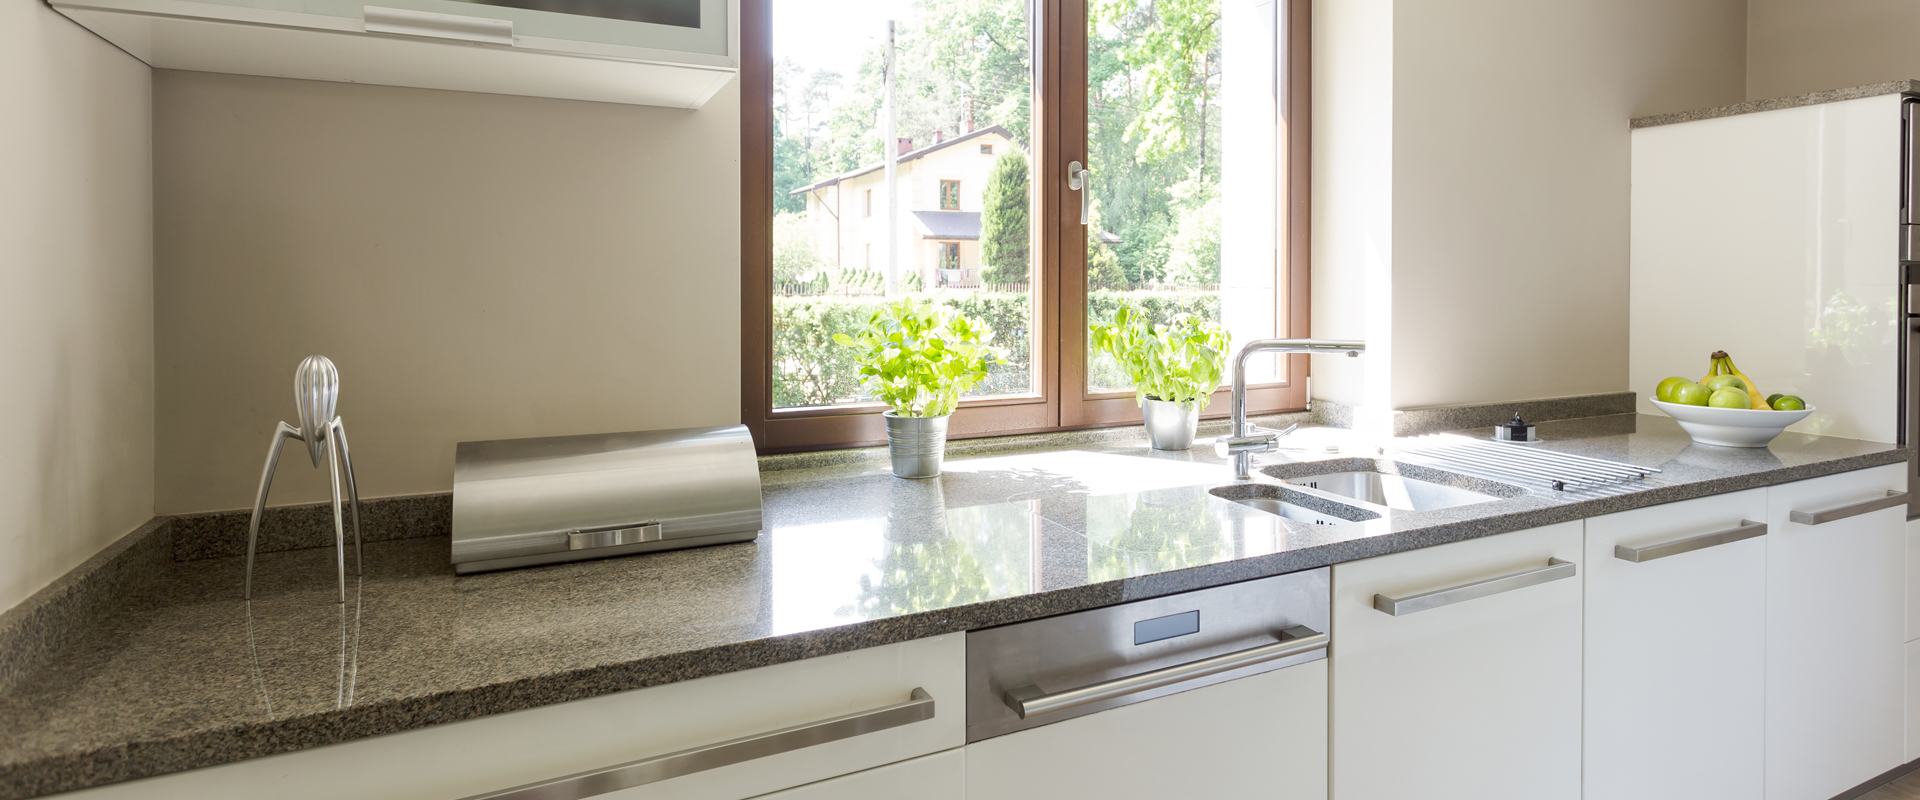 kitchen surface with sink with flower pot by a window in bright daylight